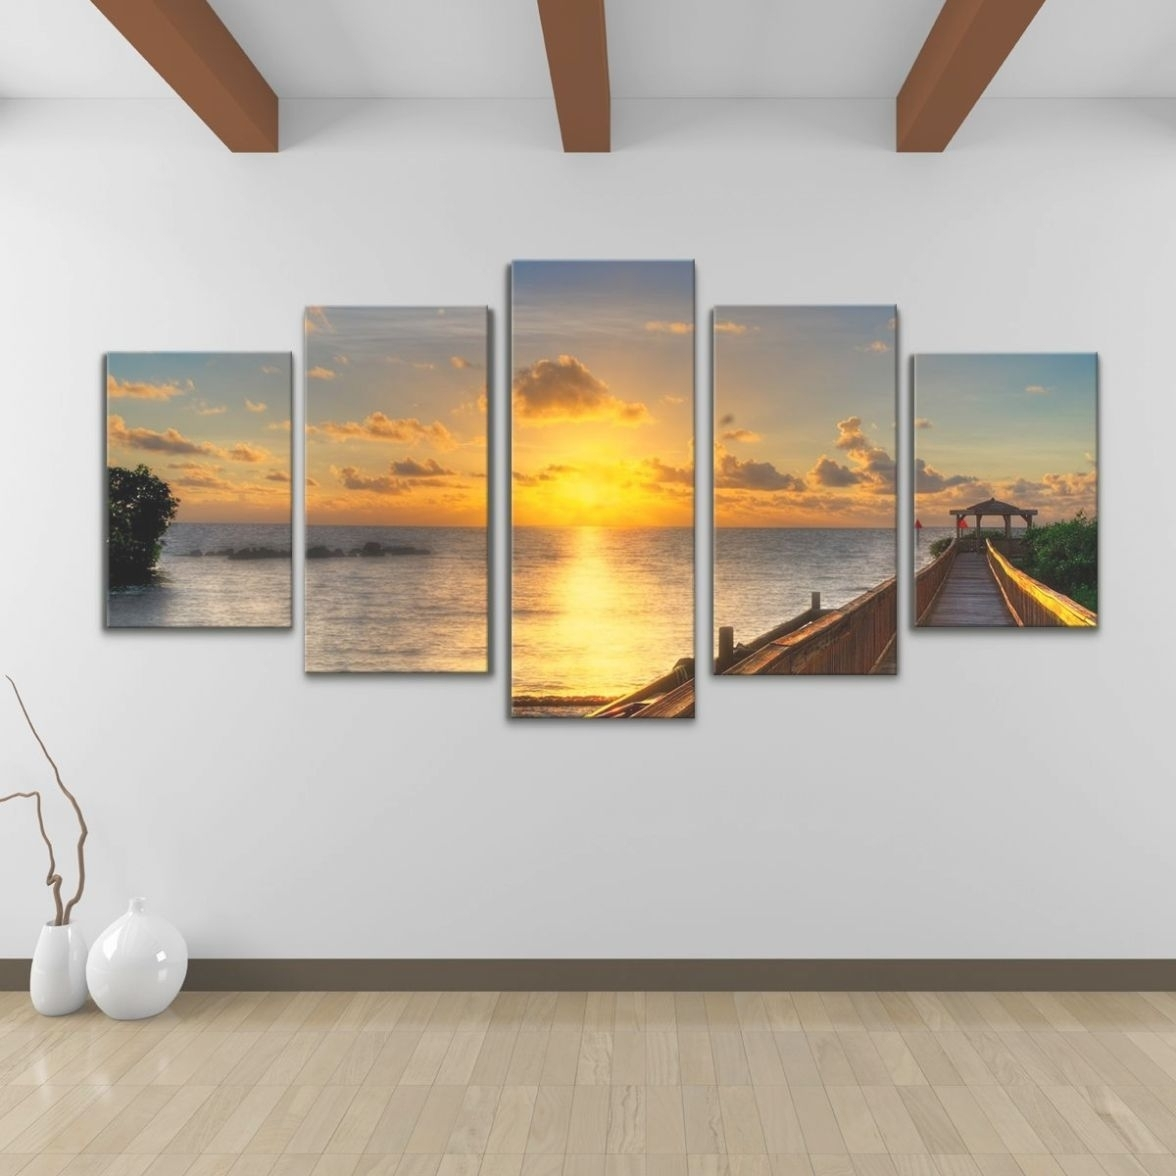 22 Photo Of 5 Piece Canvas Wall Art Inside Most Up To Date Kohls 5 Piece Canvas Wall Art (Gallery 7 of 15)